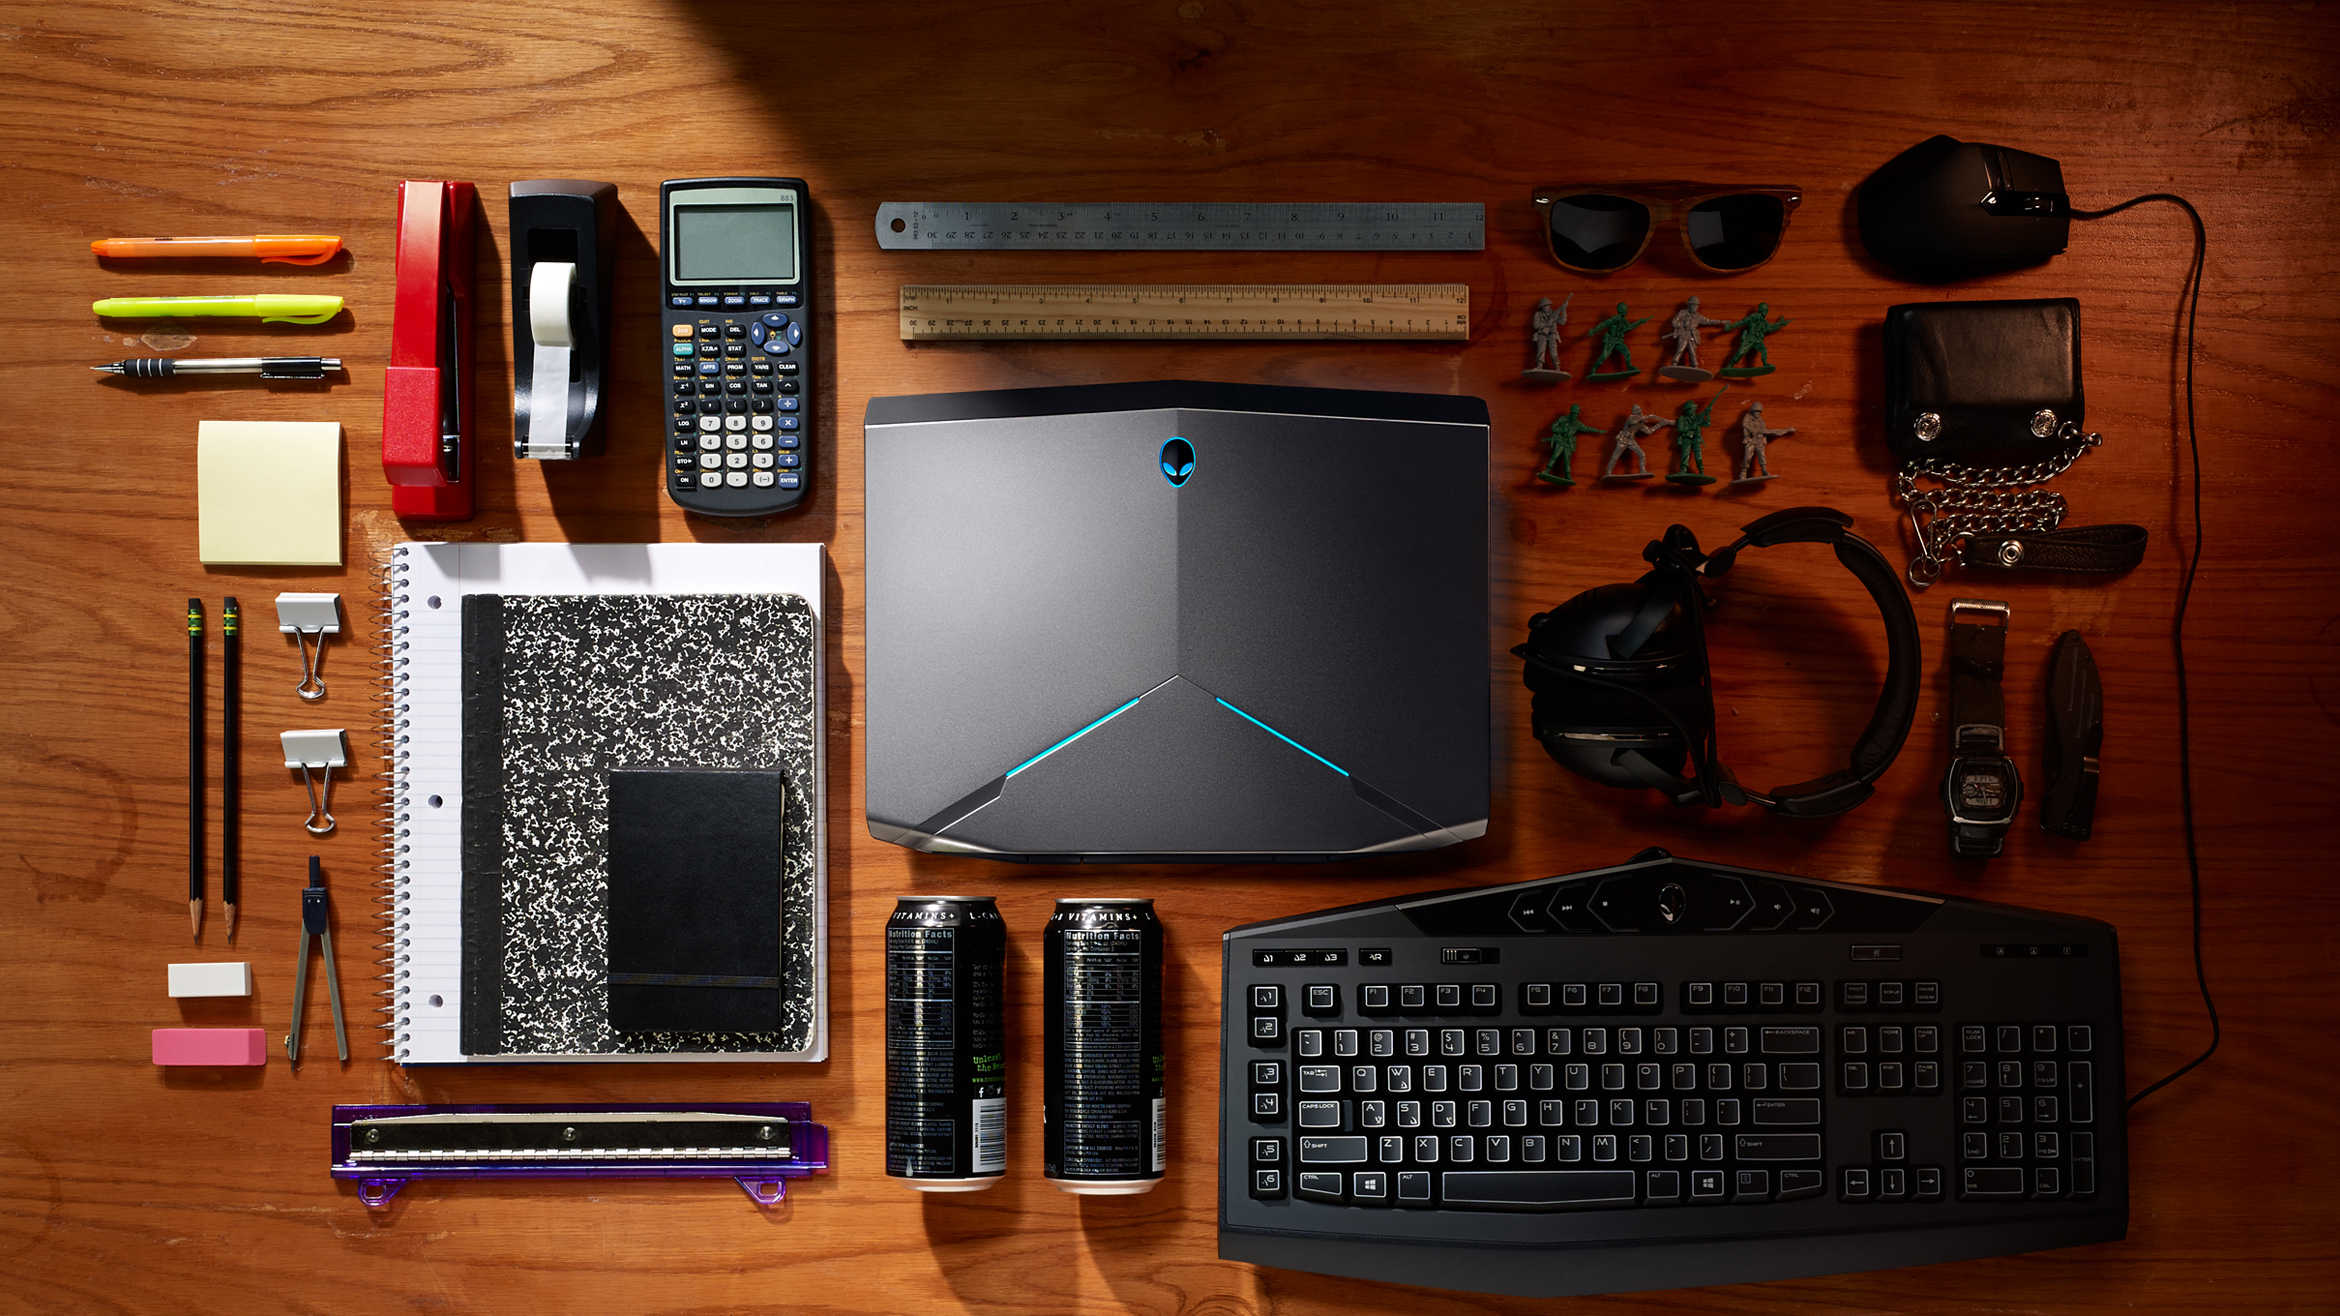 dell_product_shots_5_2340x1316